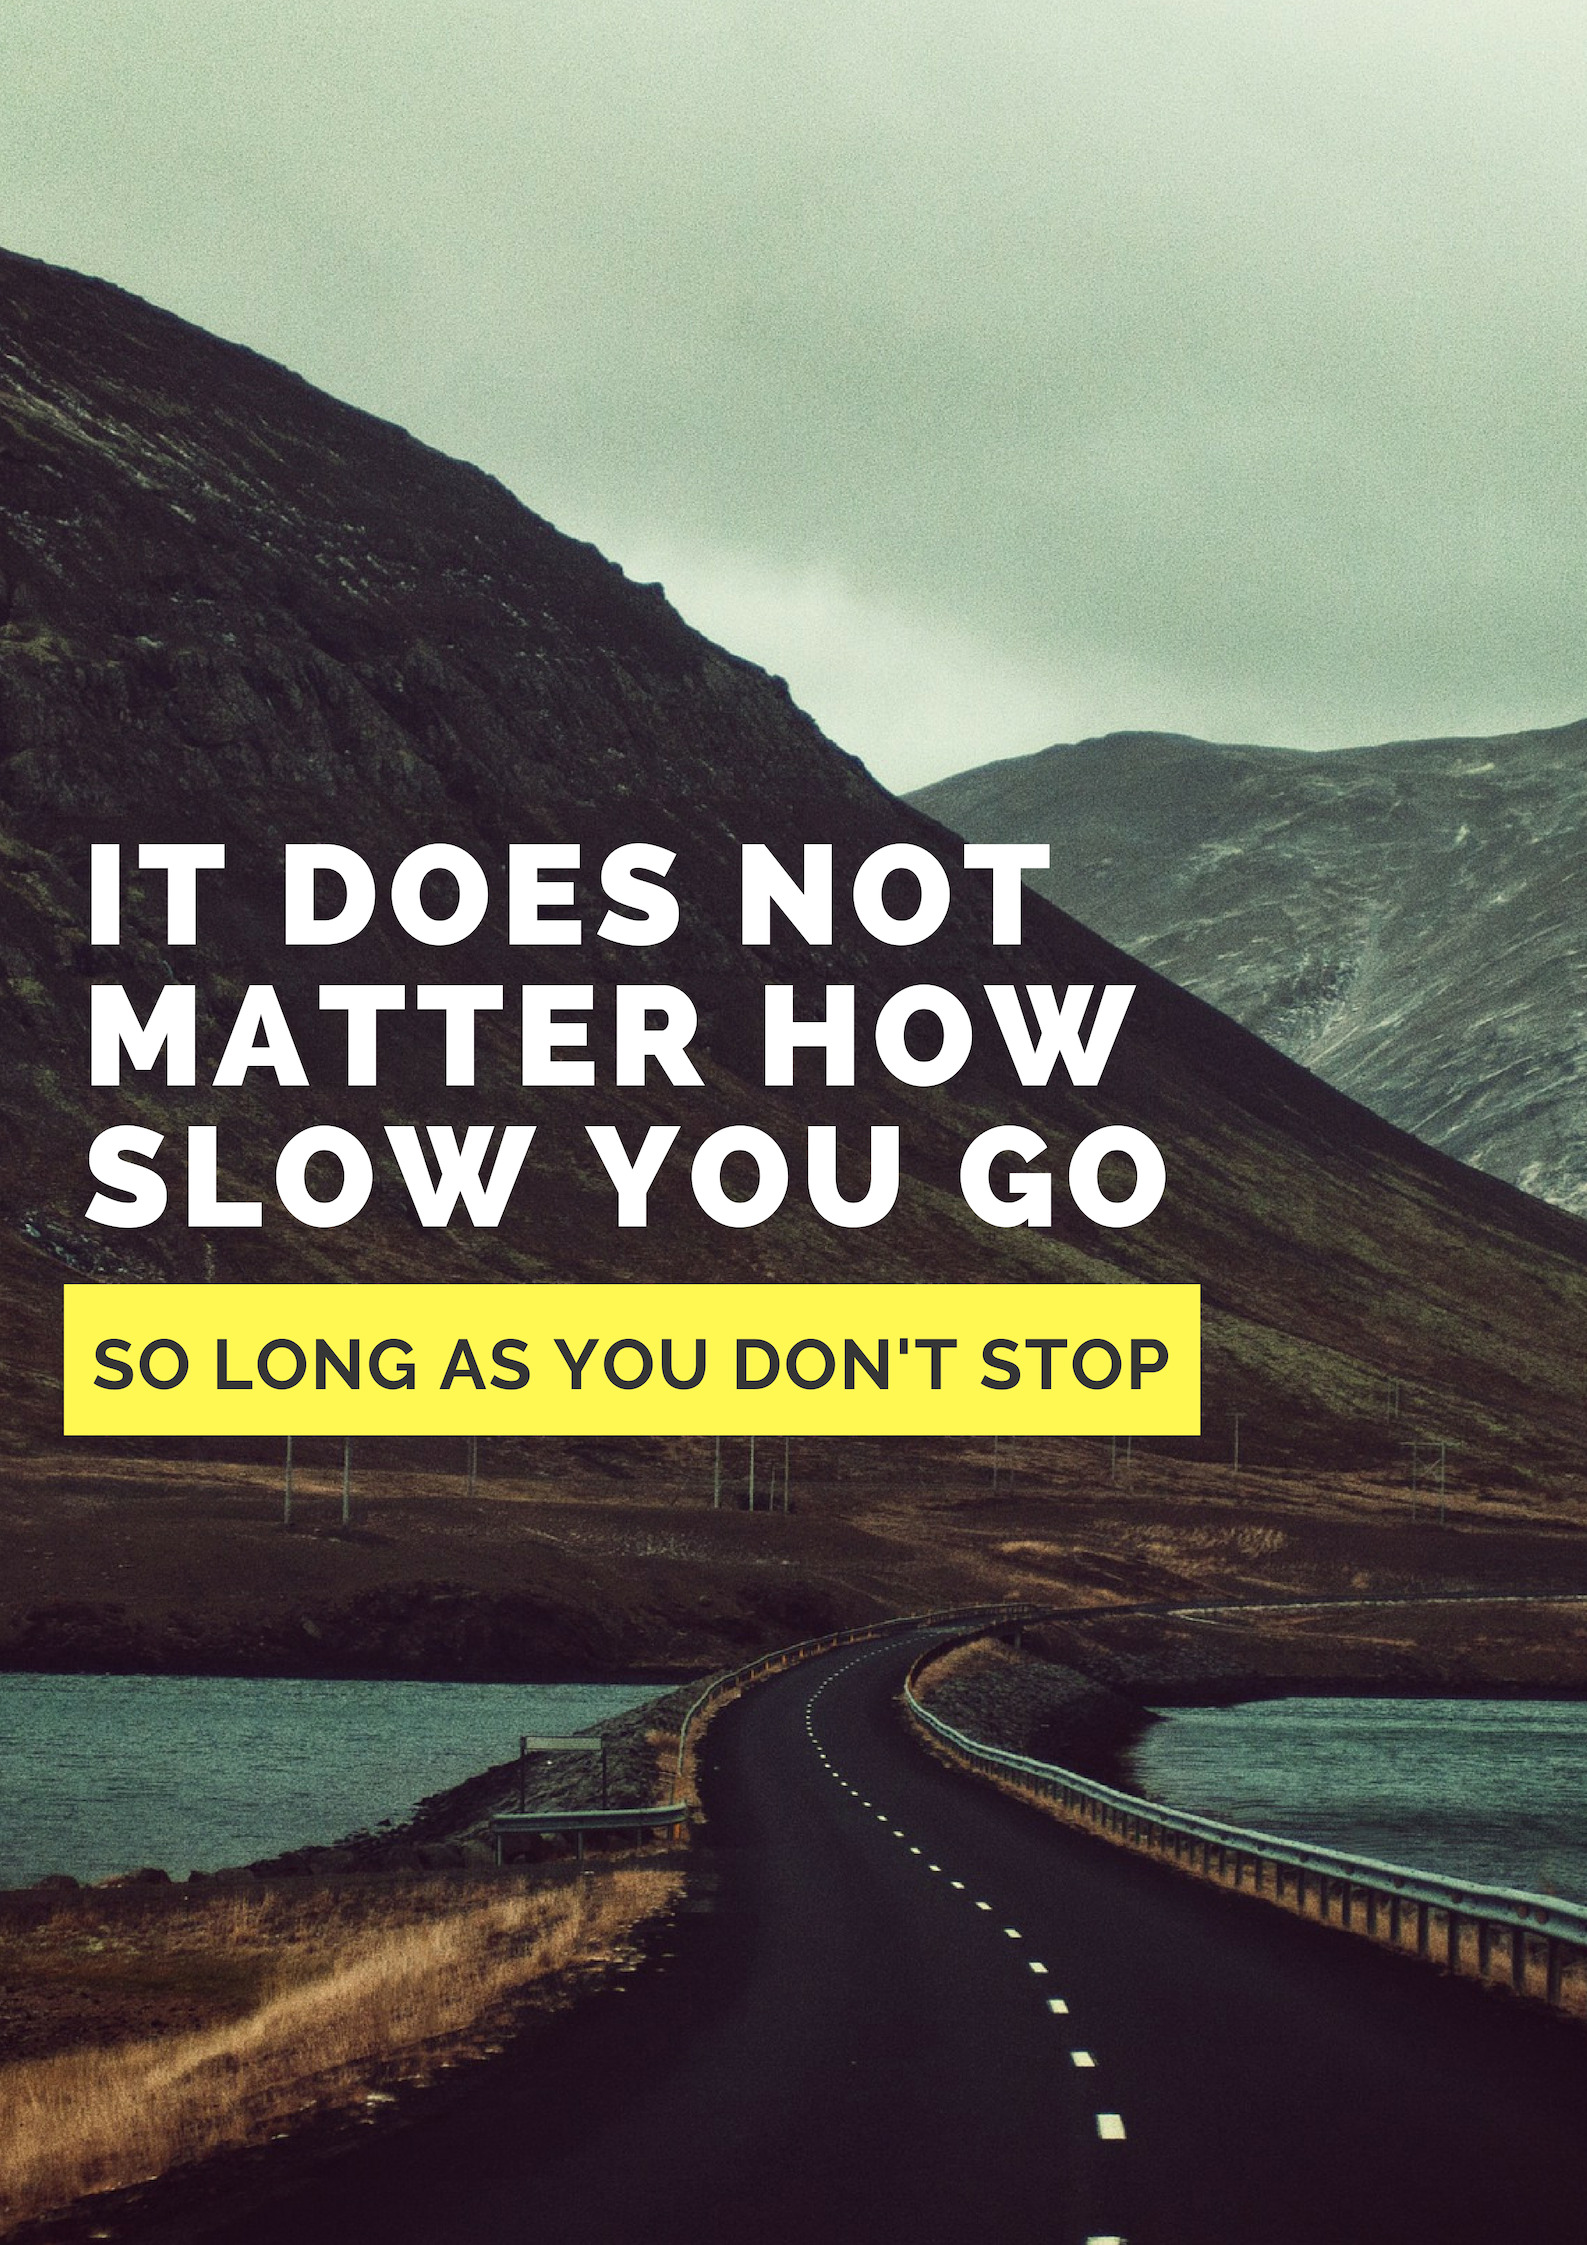 [Image] It does not matter how slow you are moving as long as you keep going